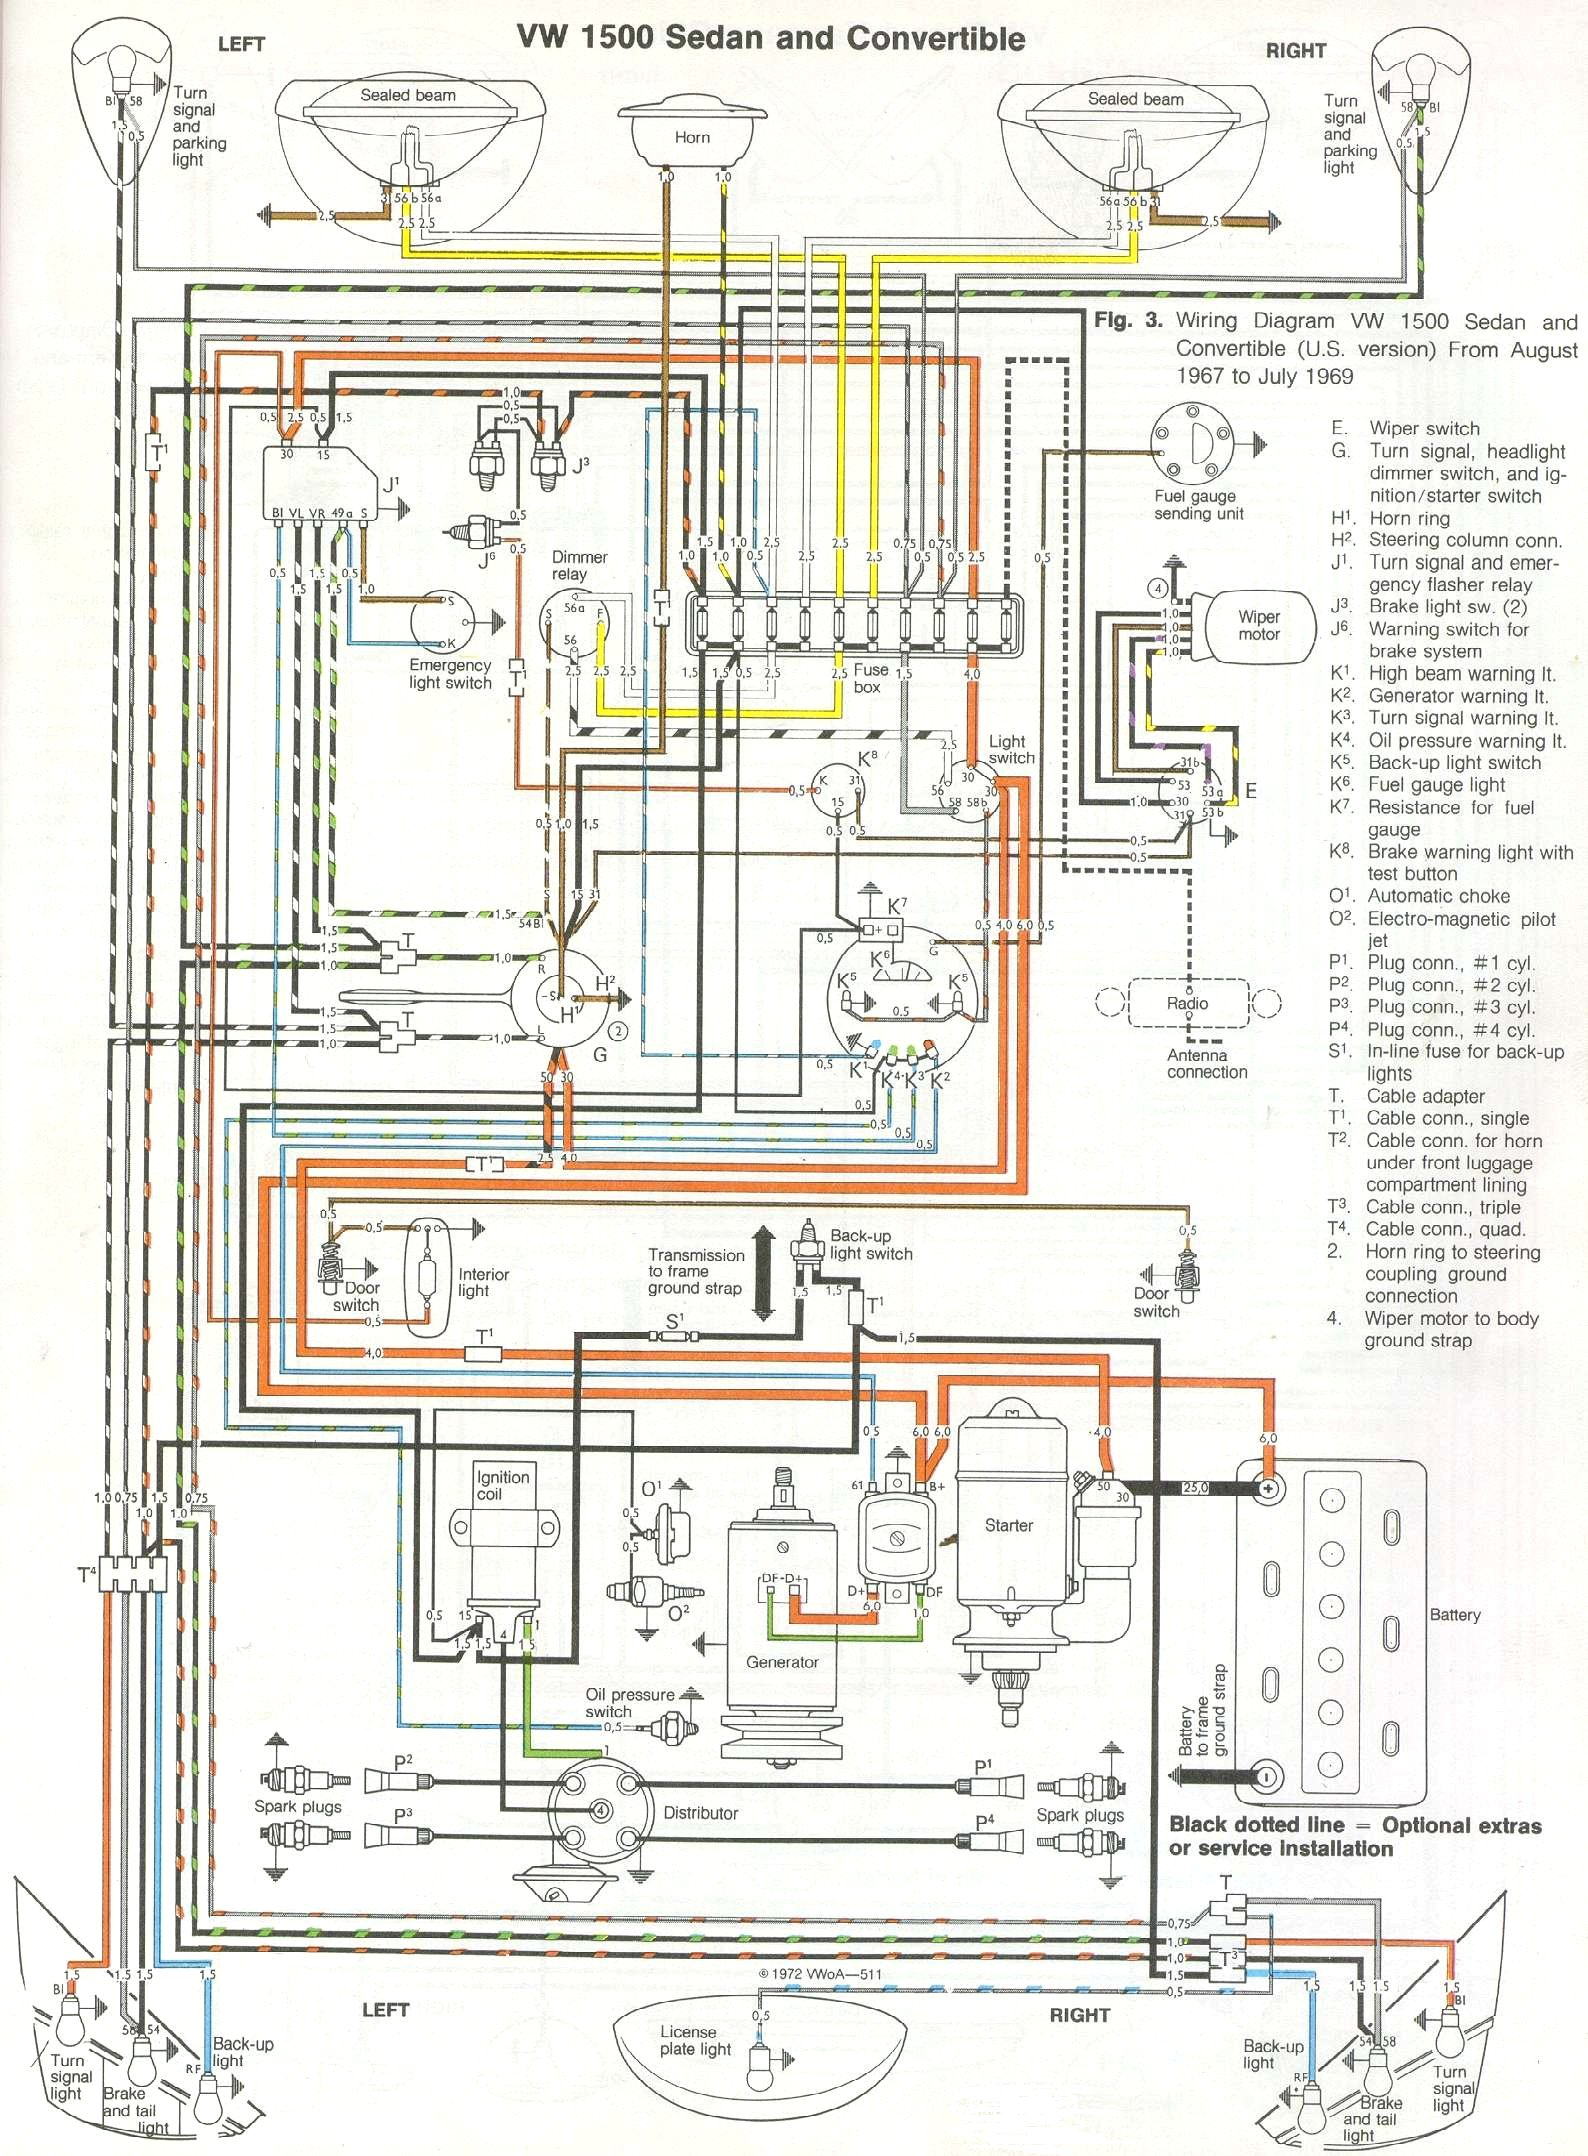 oldsmobile cutlass wiring diagram 1970 beetle wiring diagram uk 1970 wiring diagrams online thesamba com type 1 wiring diagrams